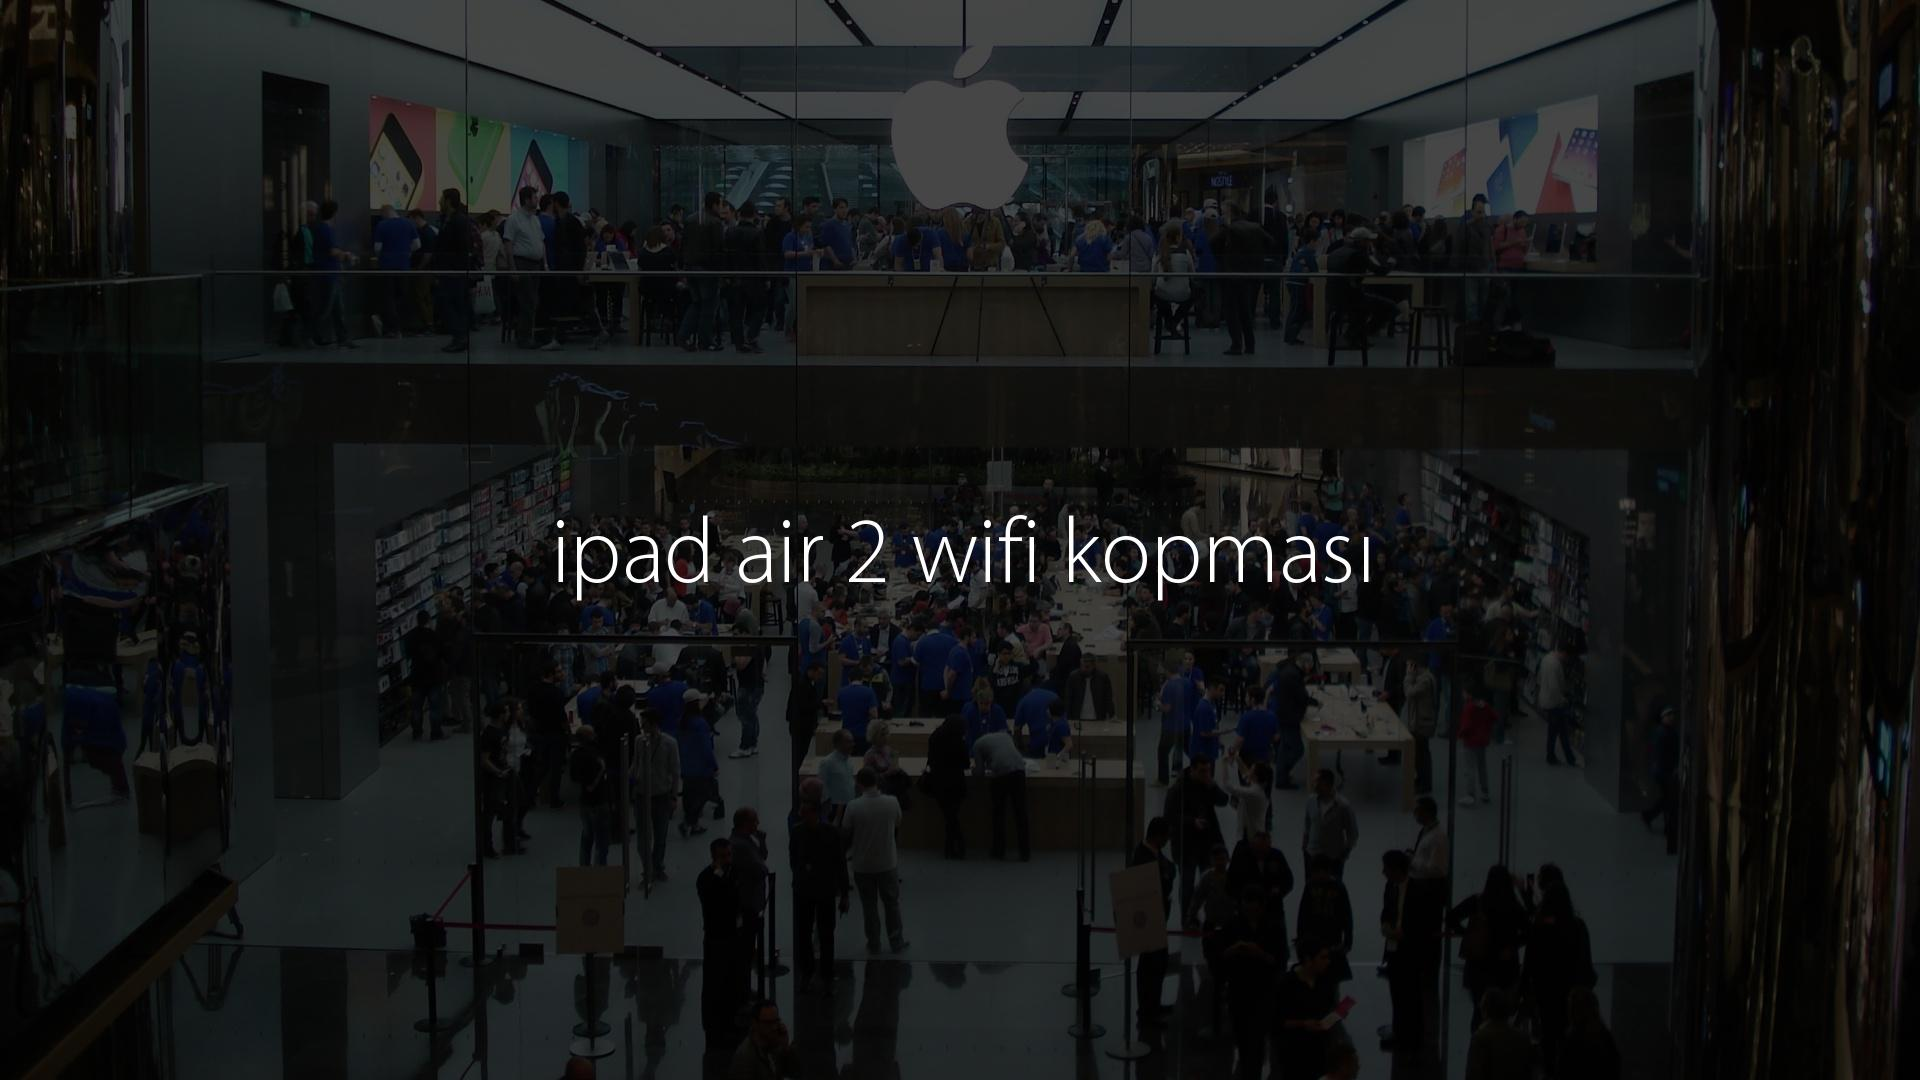 ipad air 2 wifi kopması